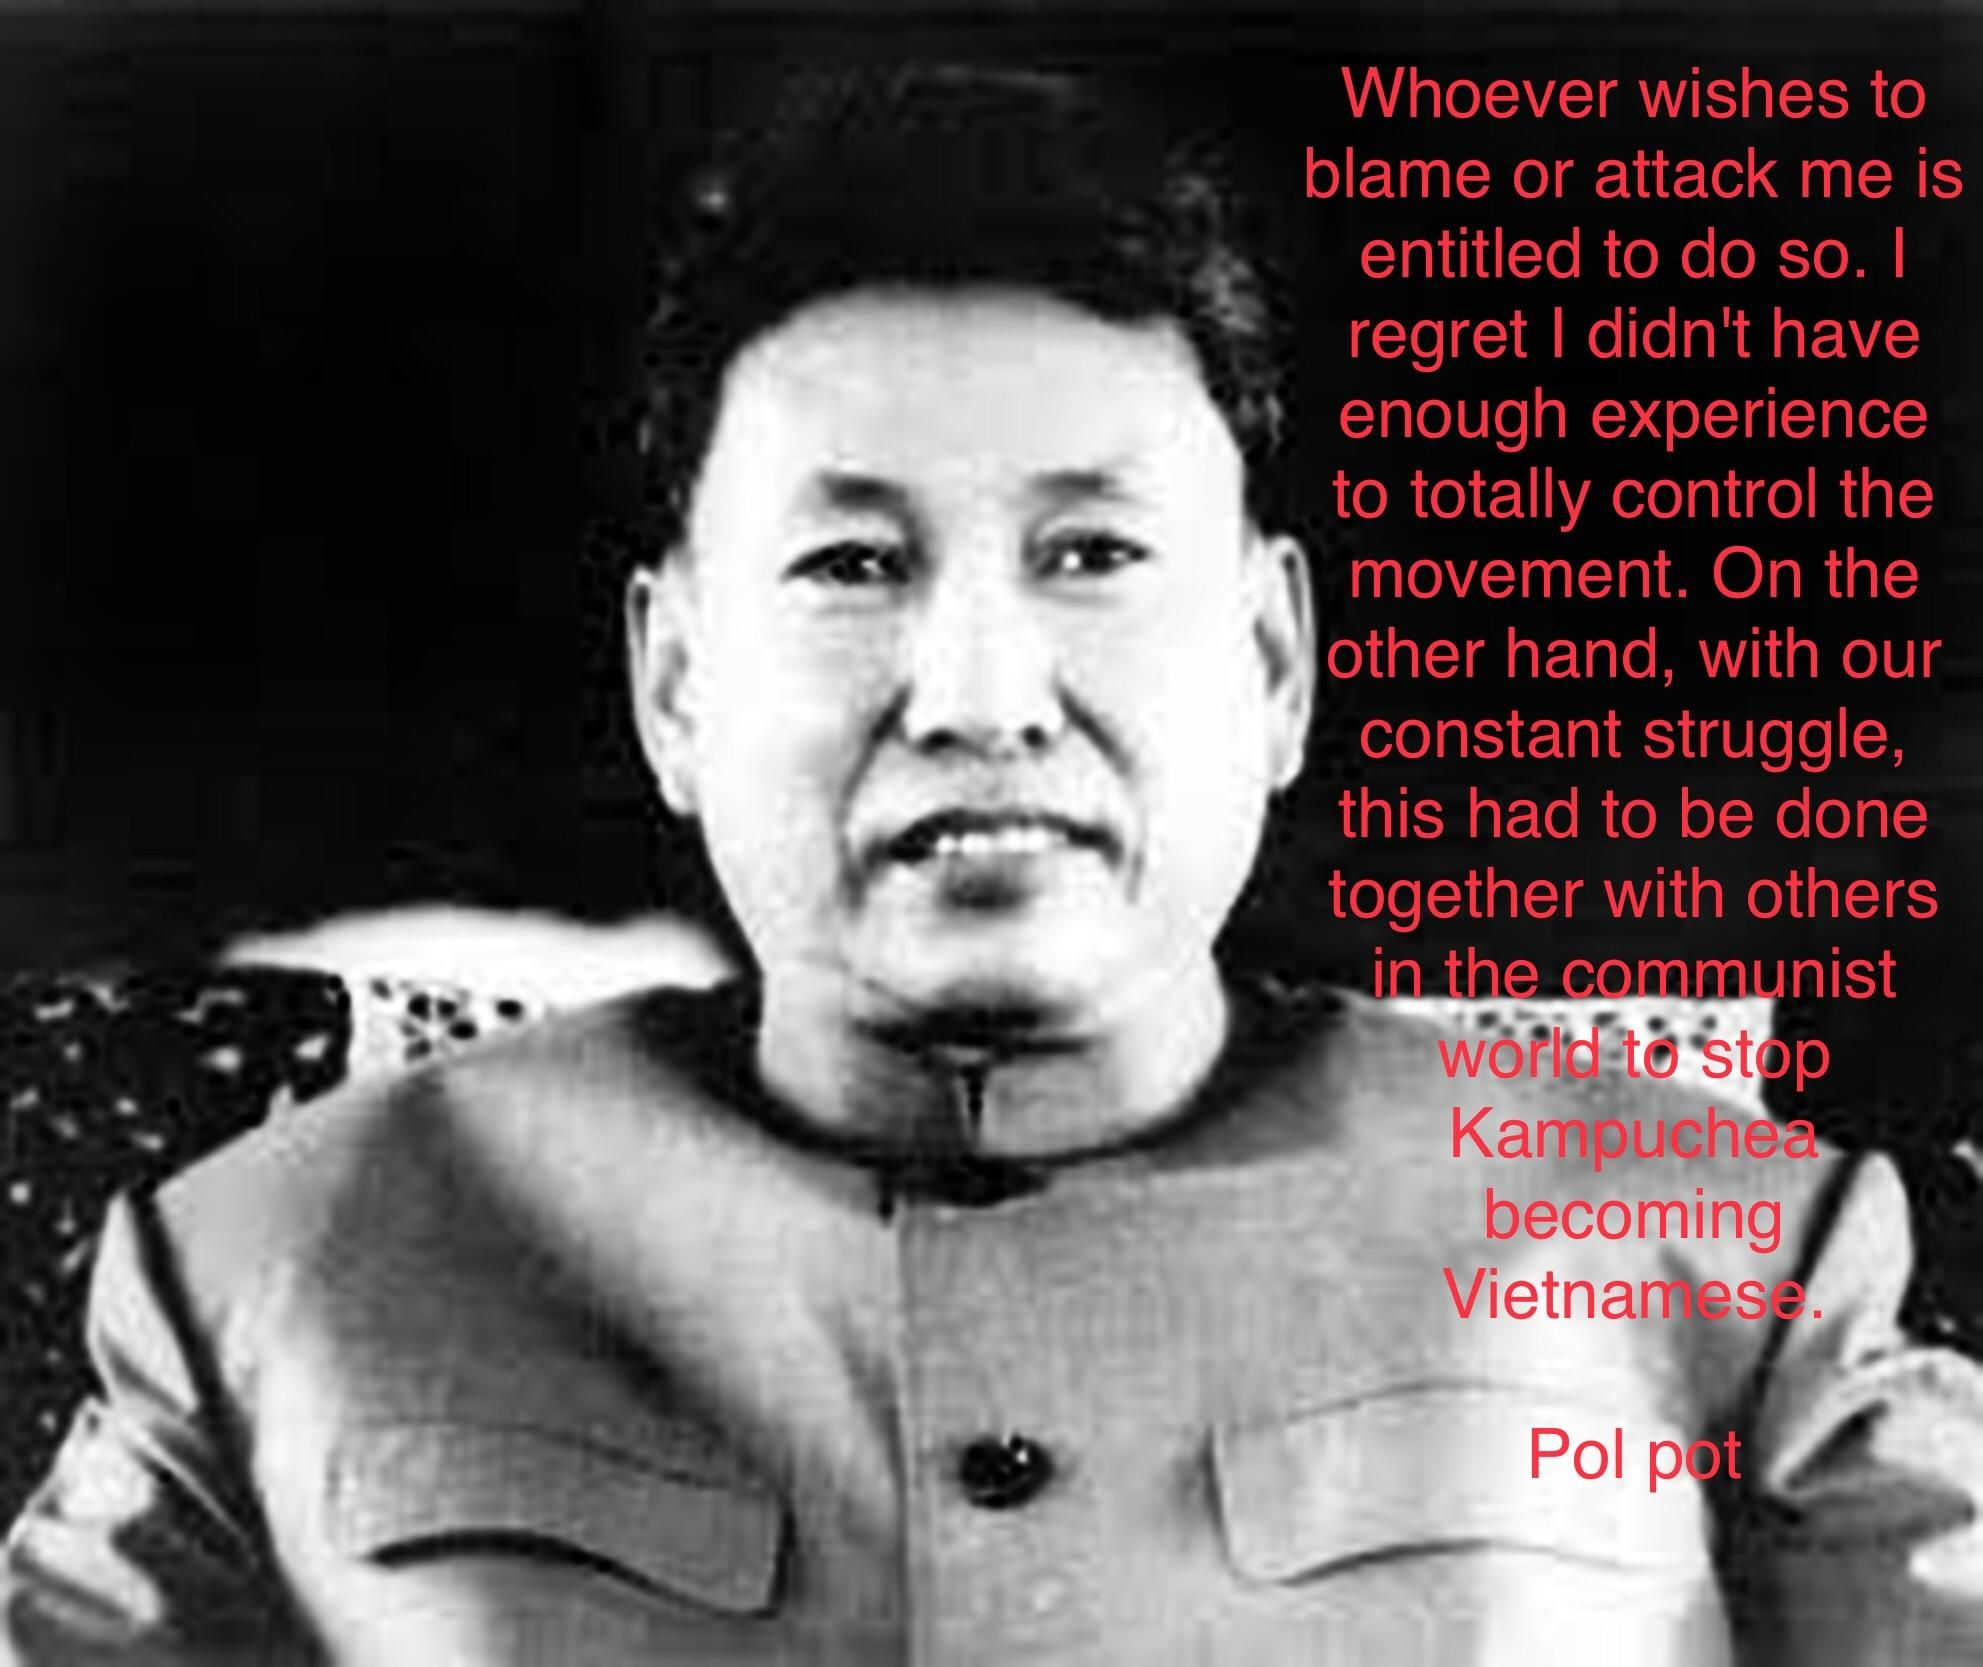 Pol Pot Quotes Awesome Whoever Wishes To Blame Or Attack Me Is Entitled To Do Sopol . Design Decoration